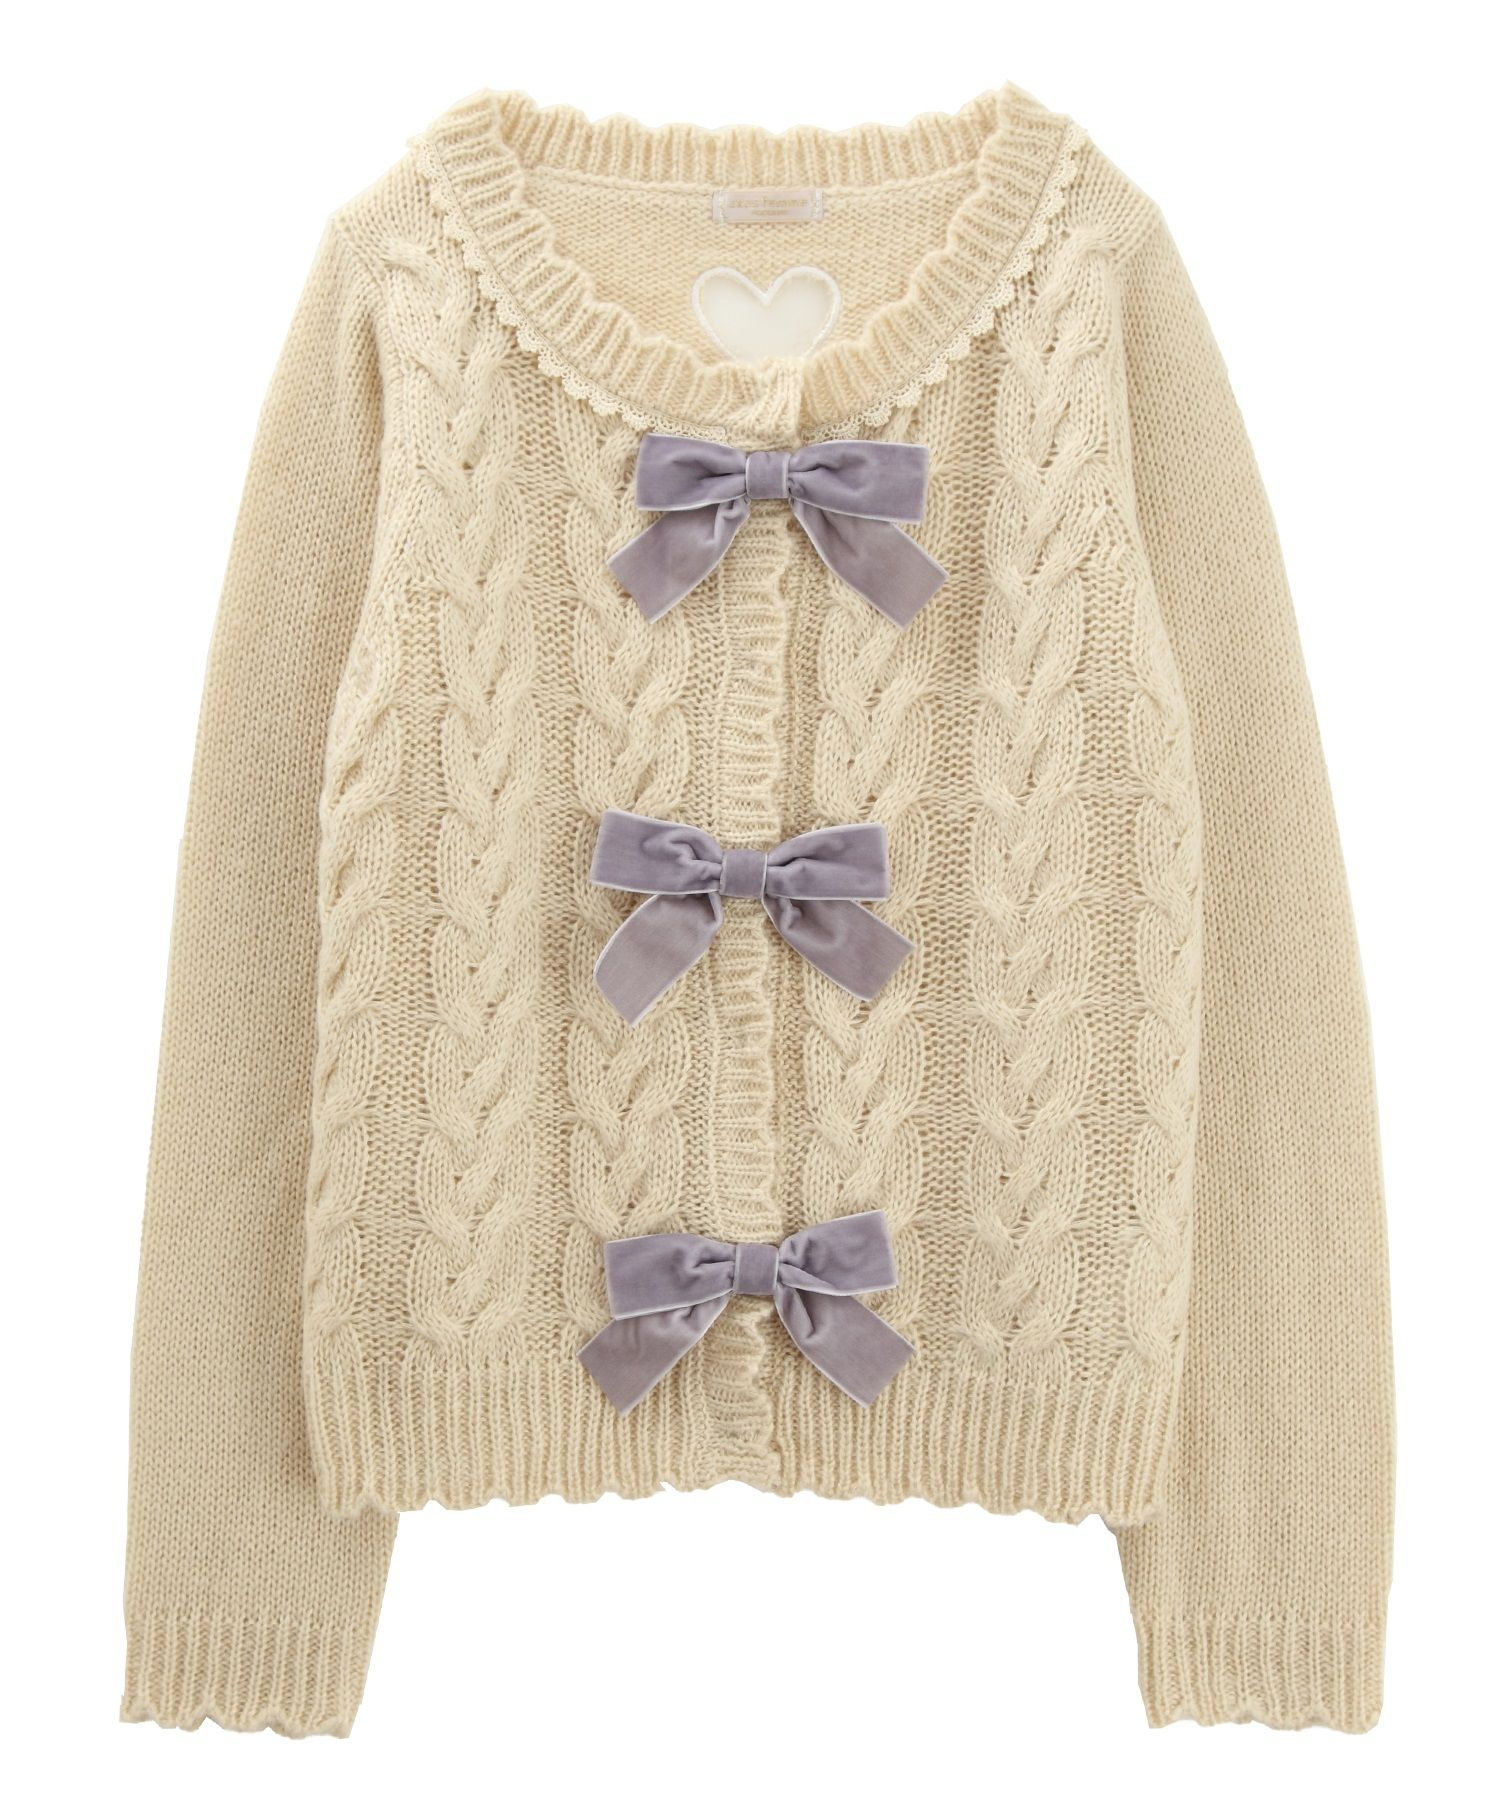 Add contrasting bows to a sweater | Romantic cottage | Pinterest ...